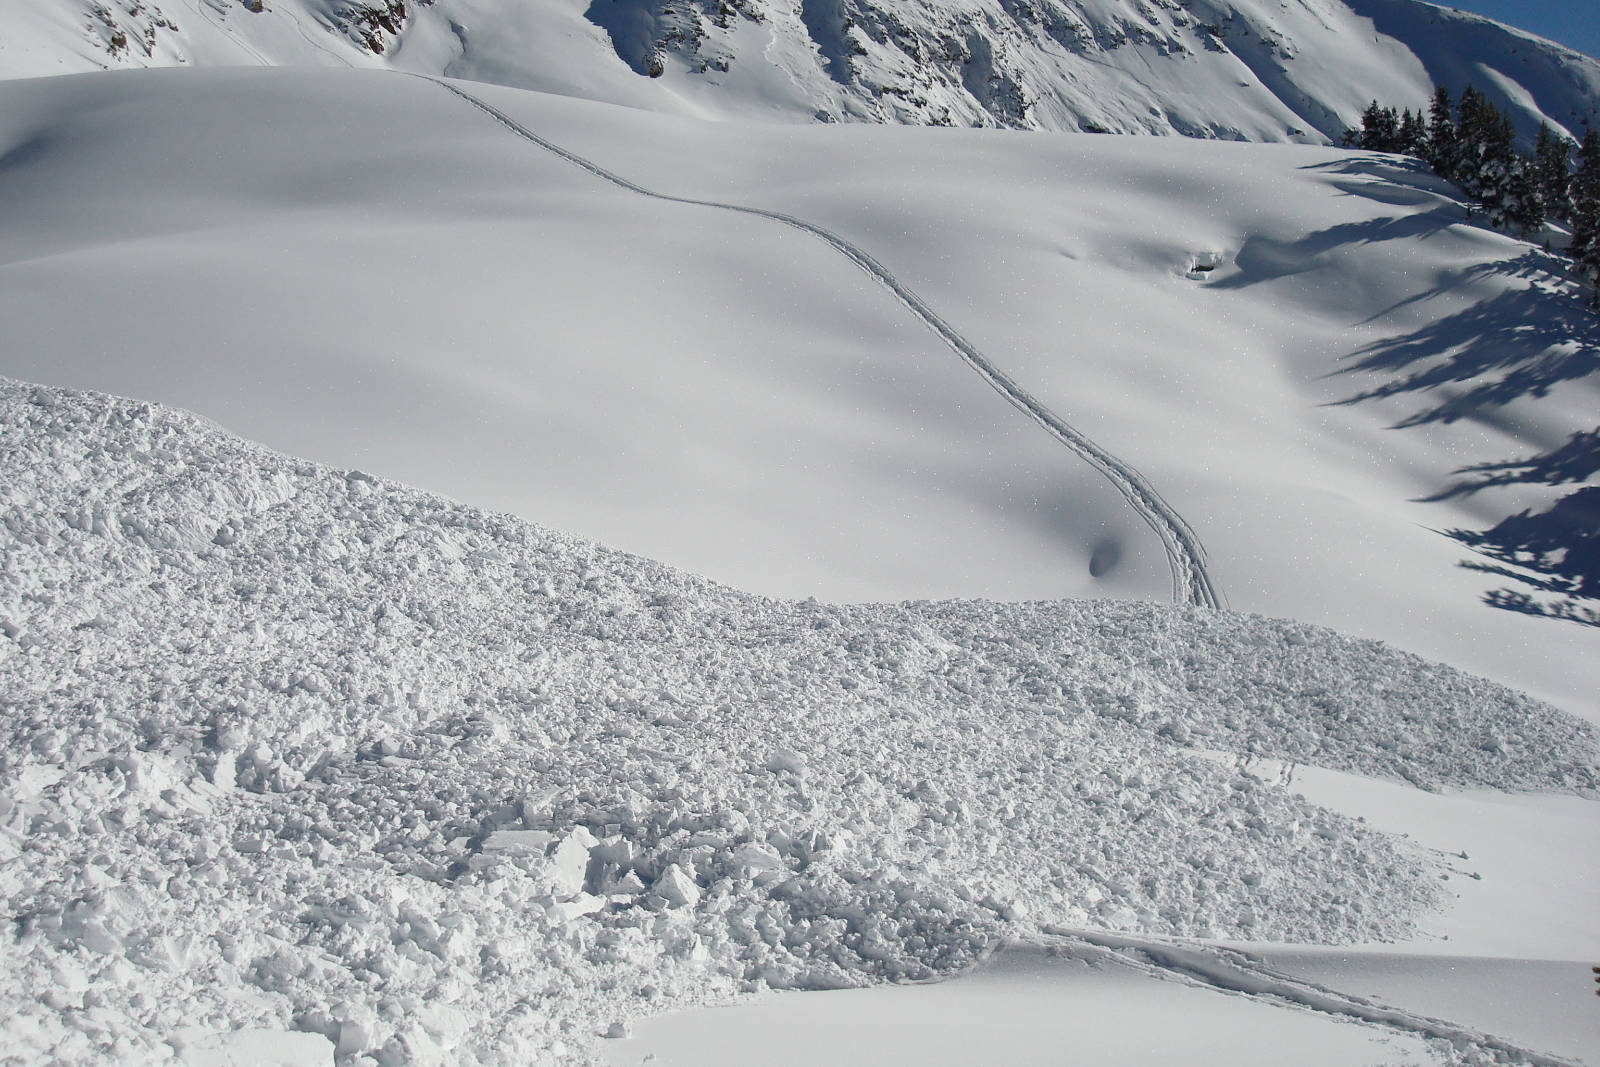 Avalanche Worker Safety